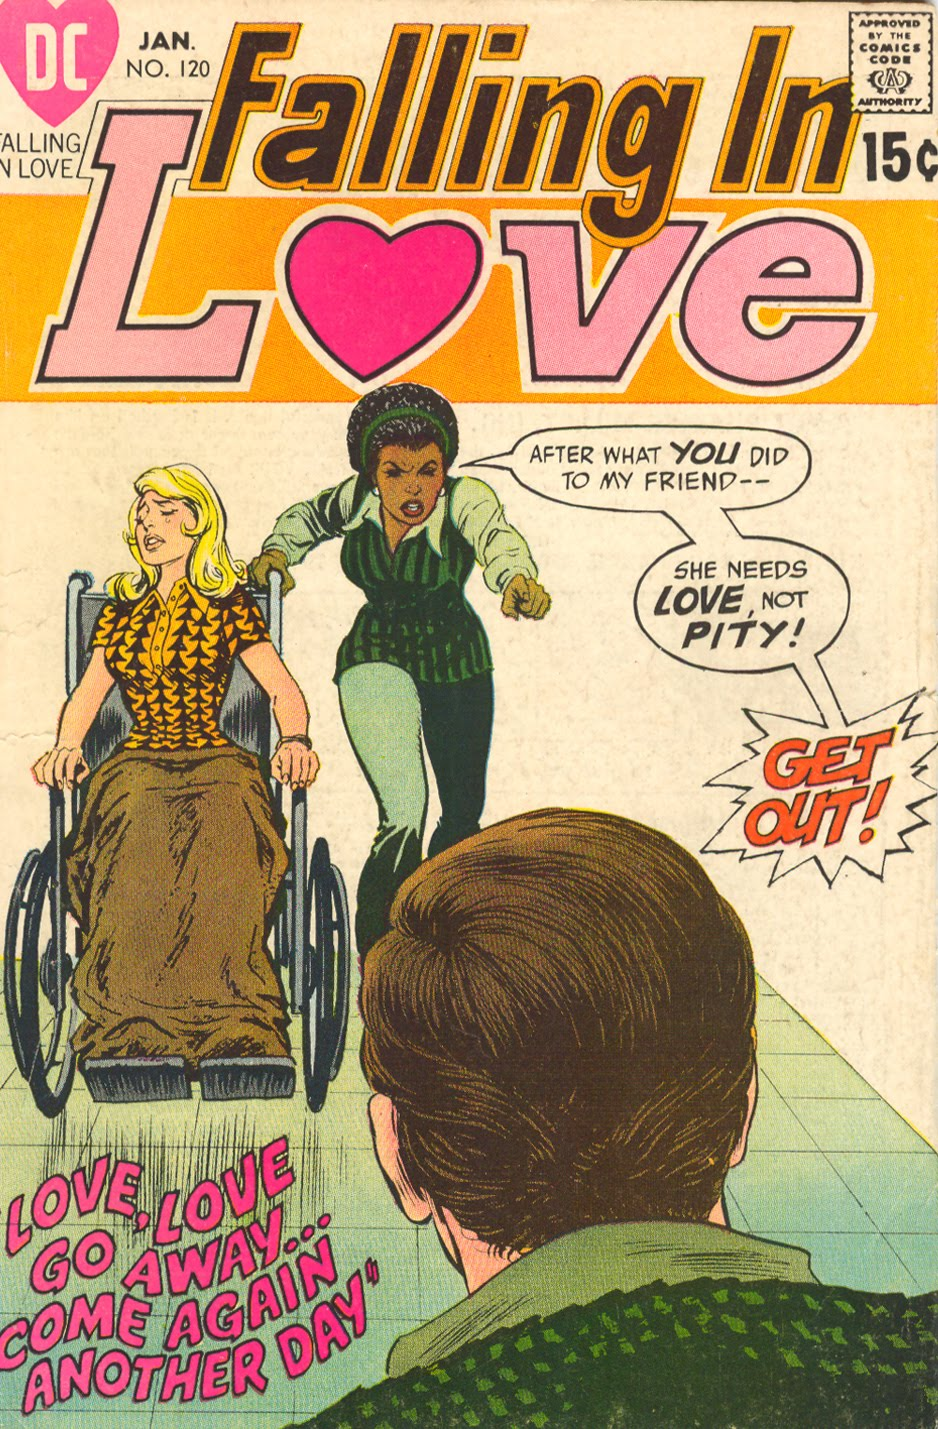 Not much needs to be said on this point -- who isn't thankful for beautifully rendered Cardy covers?